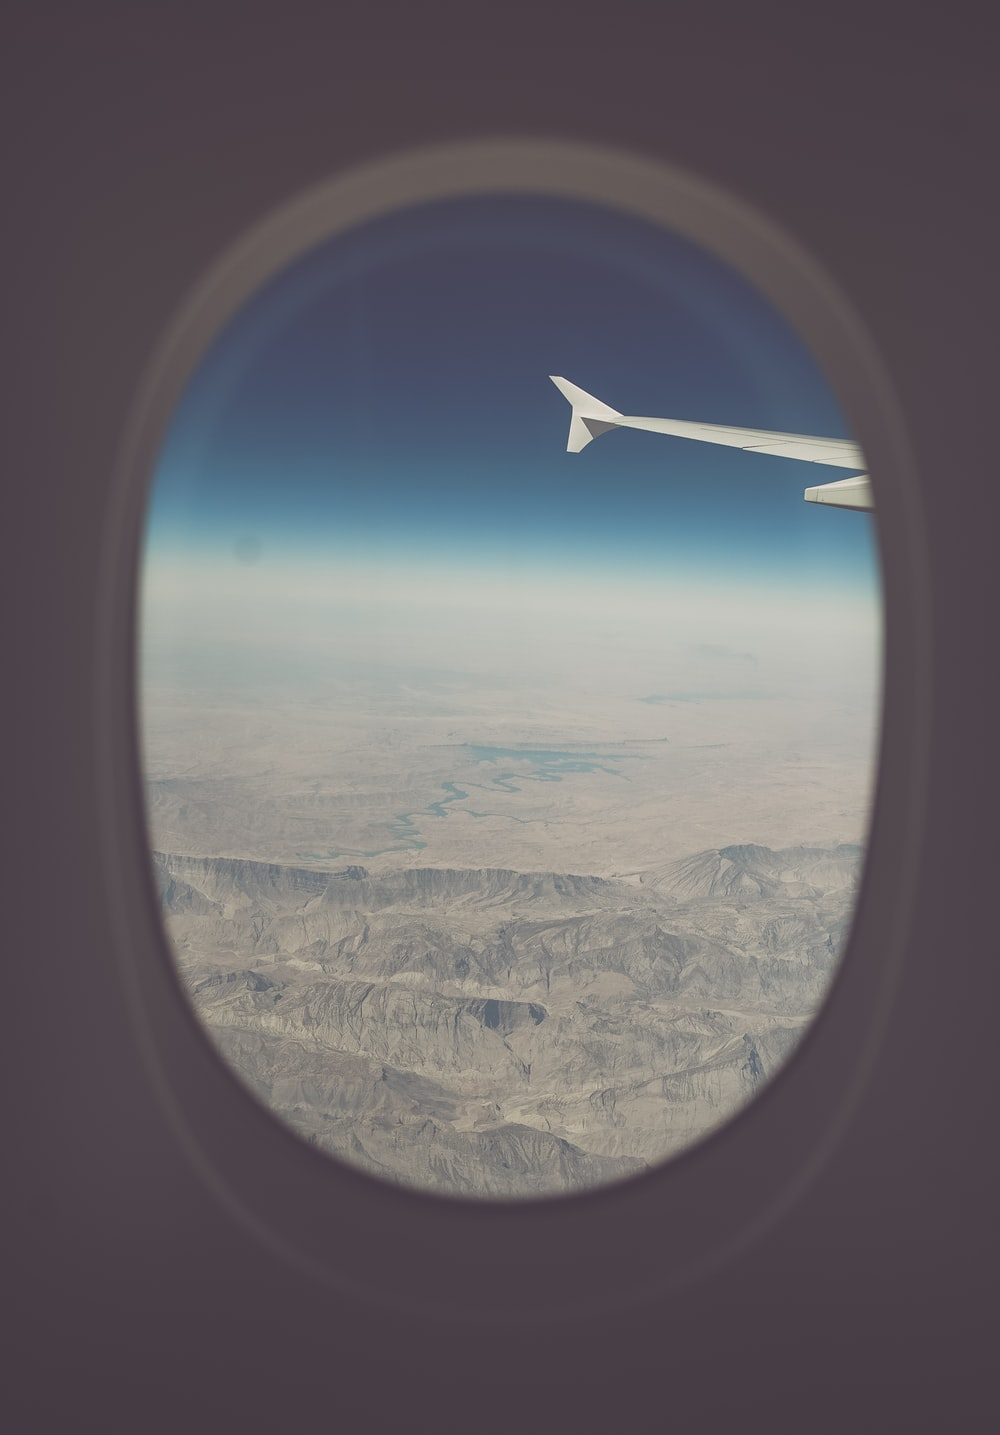 view of mountains from airplane window